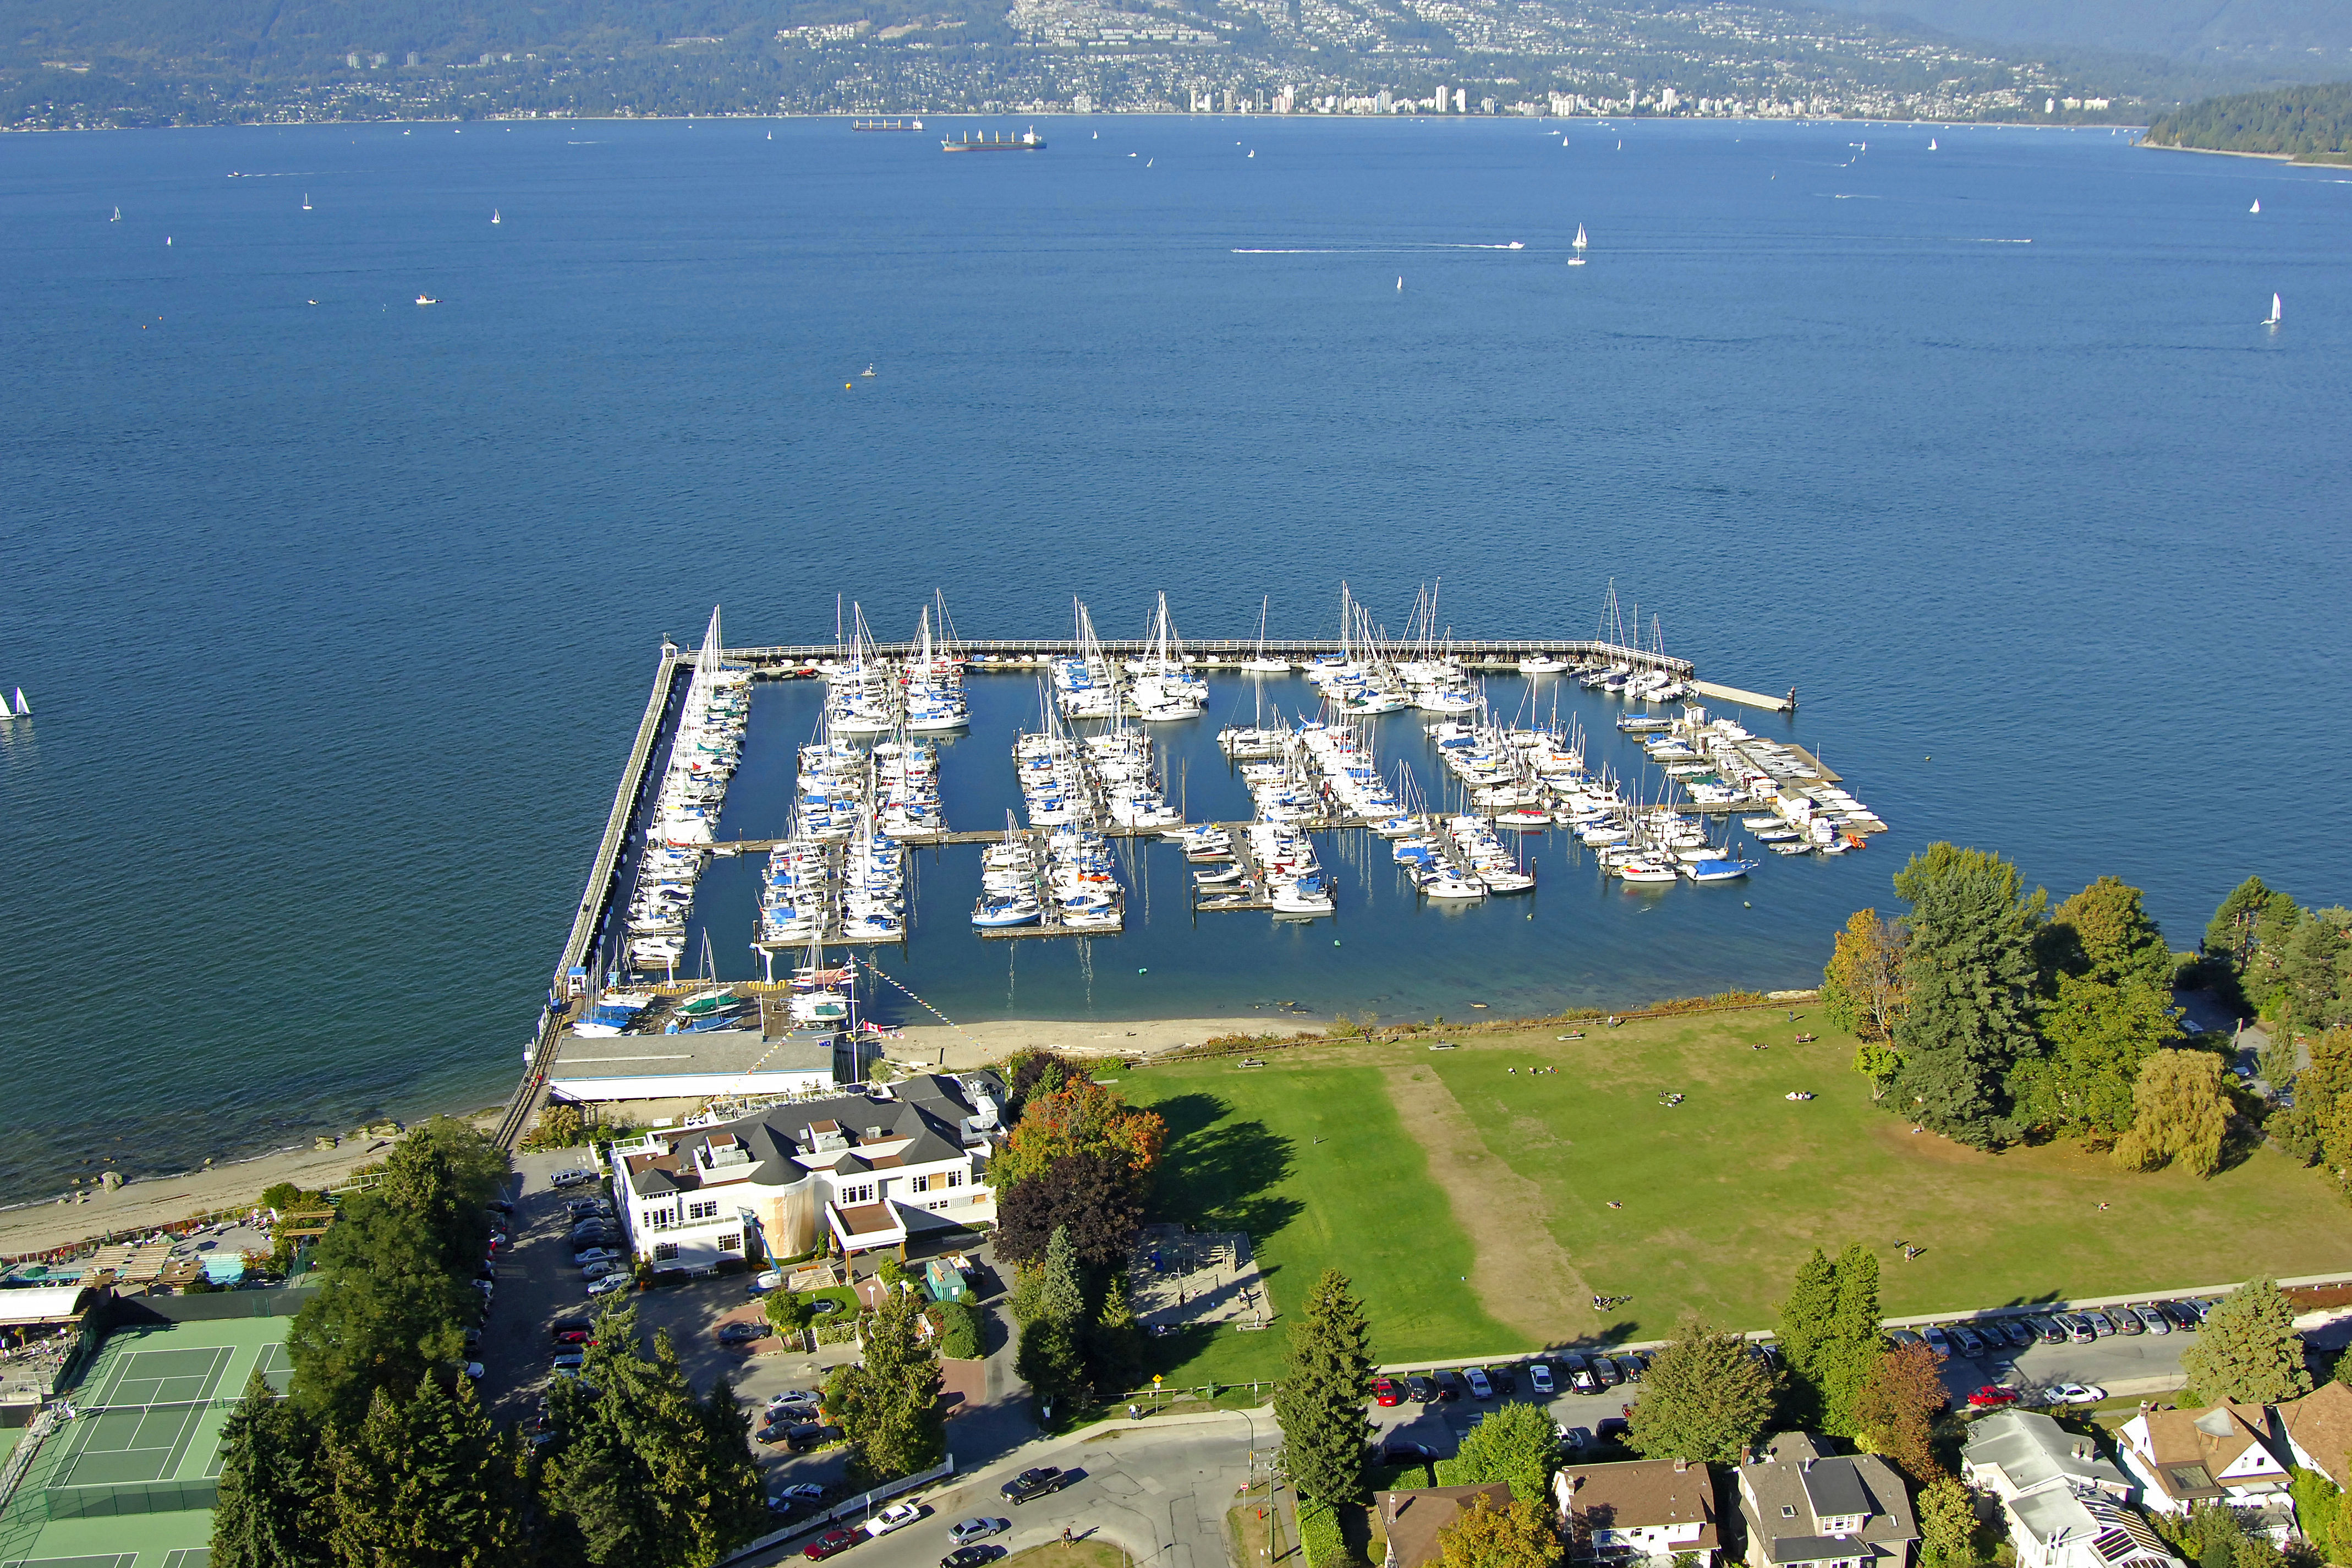 Royal Vancouver Yacht Club Jericho In BC Canada Marina